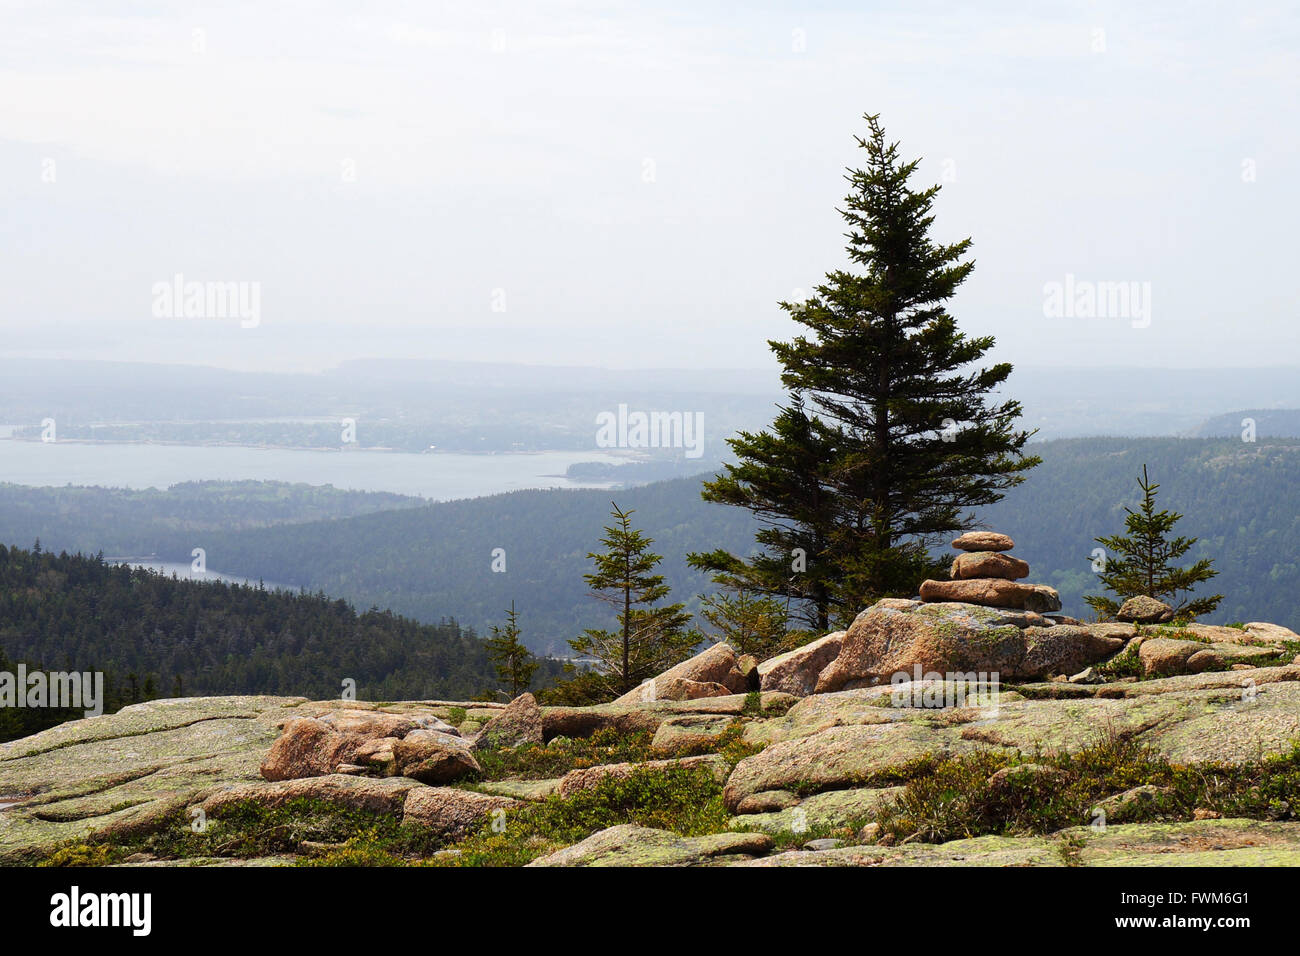 Landscape with spruces, boulders, remote forest and water in a haze. - Stock Image